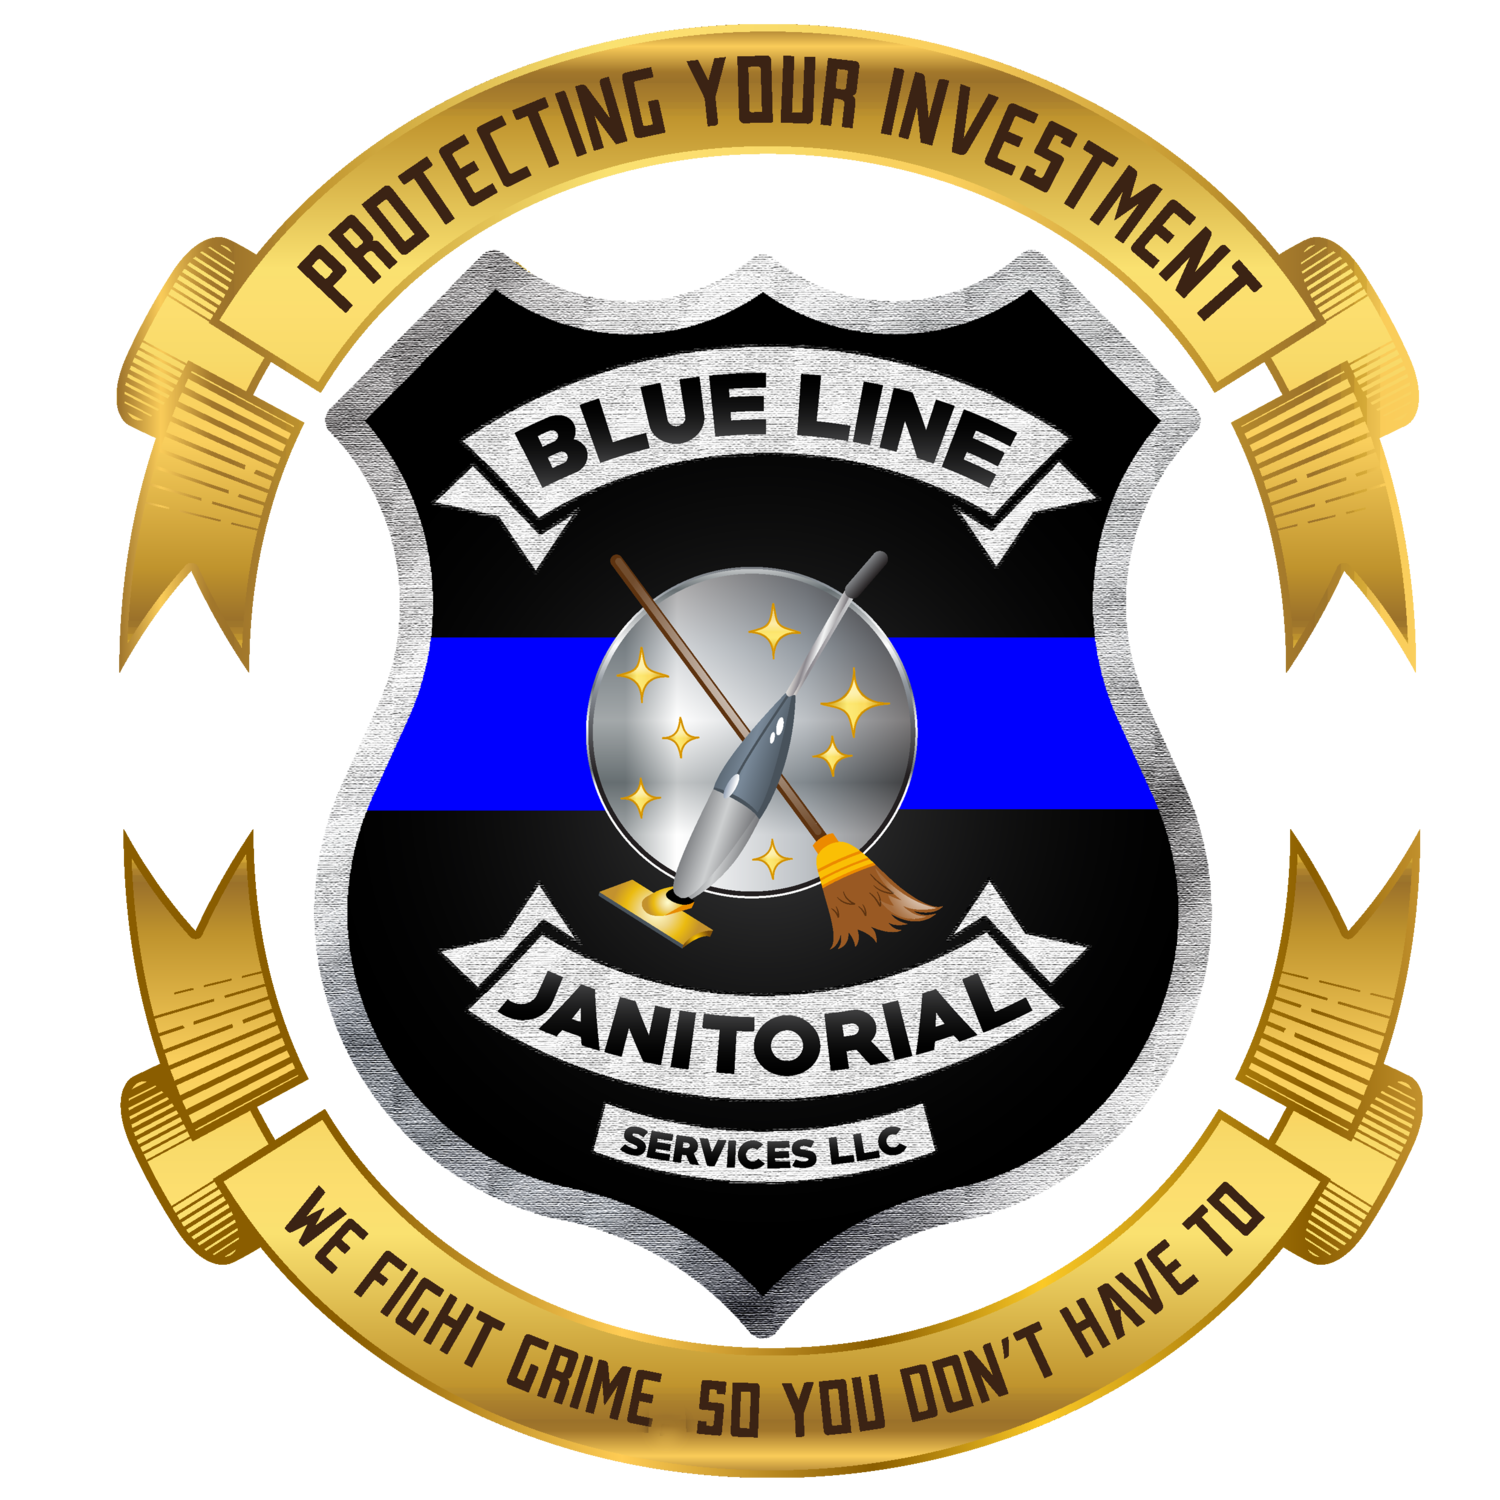 Blue Line Janitorial Services LLC